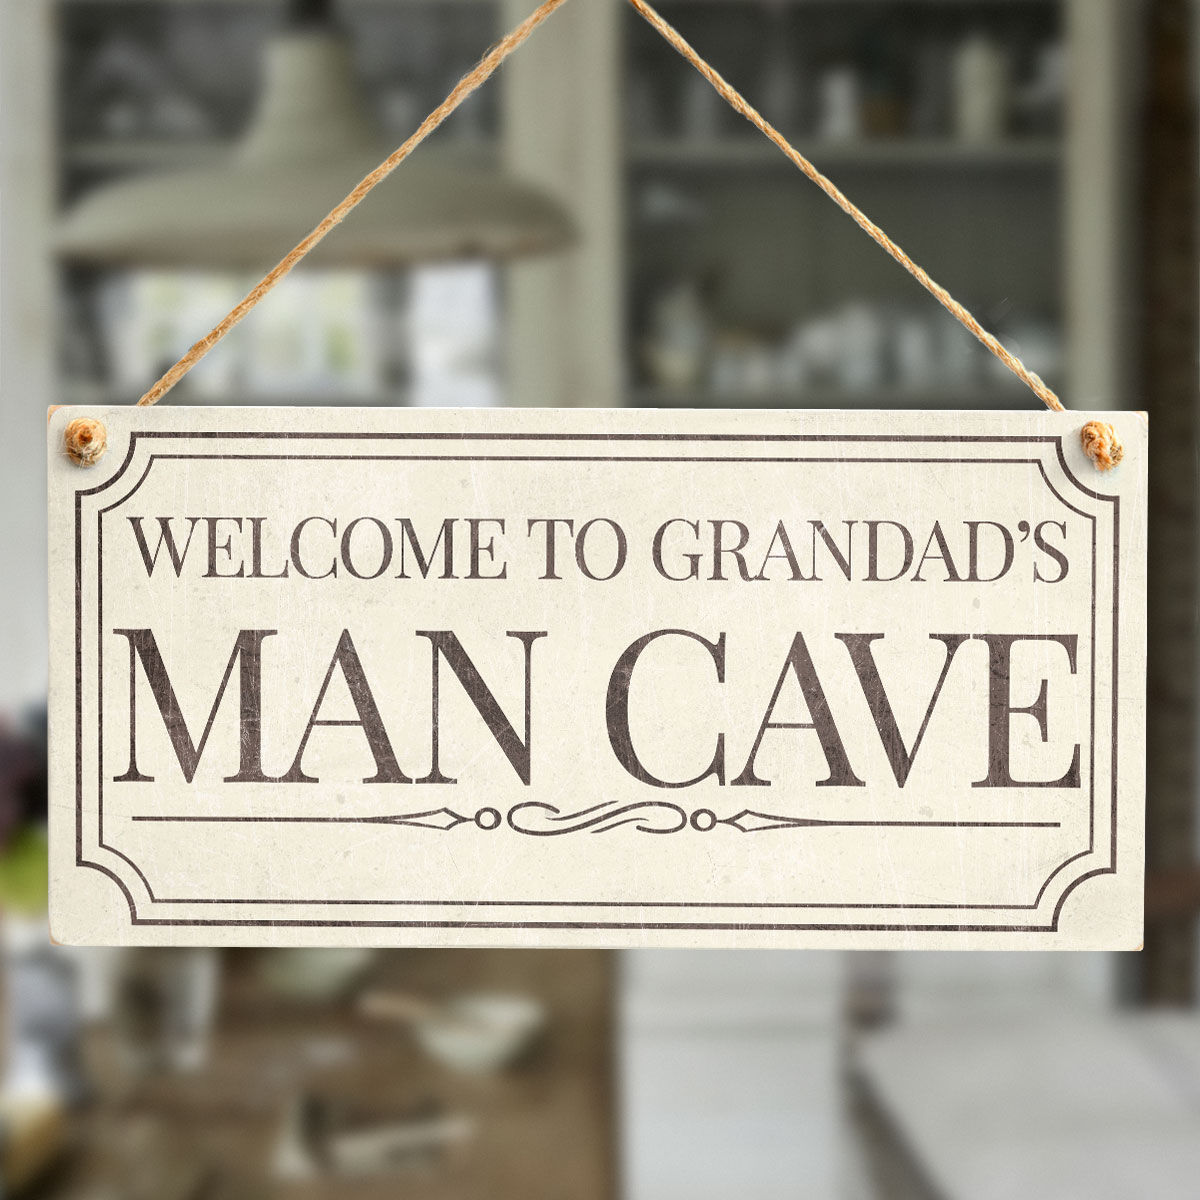 Homemade Man Cave Signs : Welcome to grandad s man cave fun traditional design